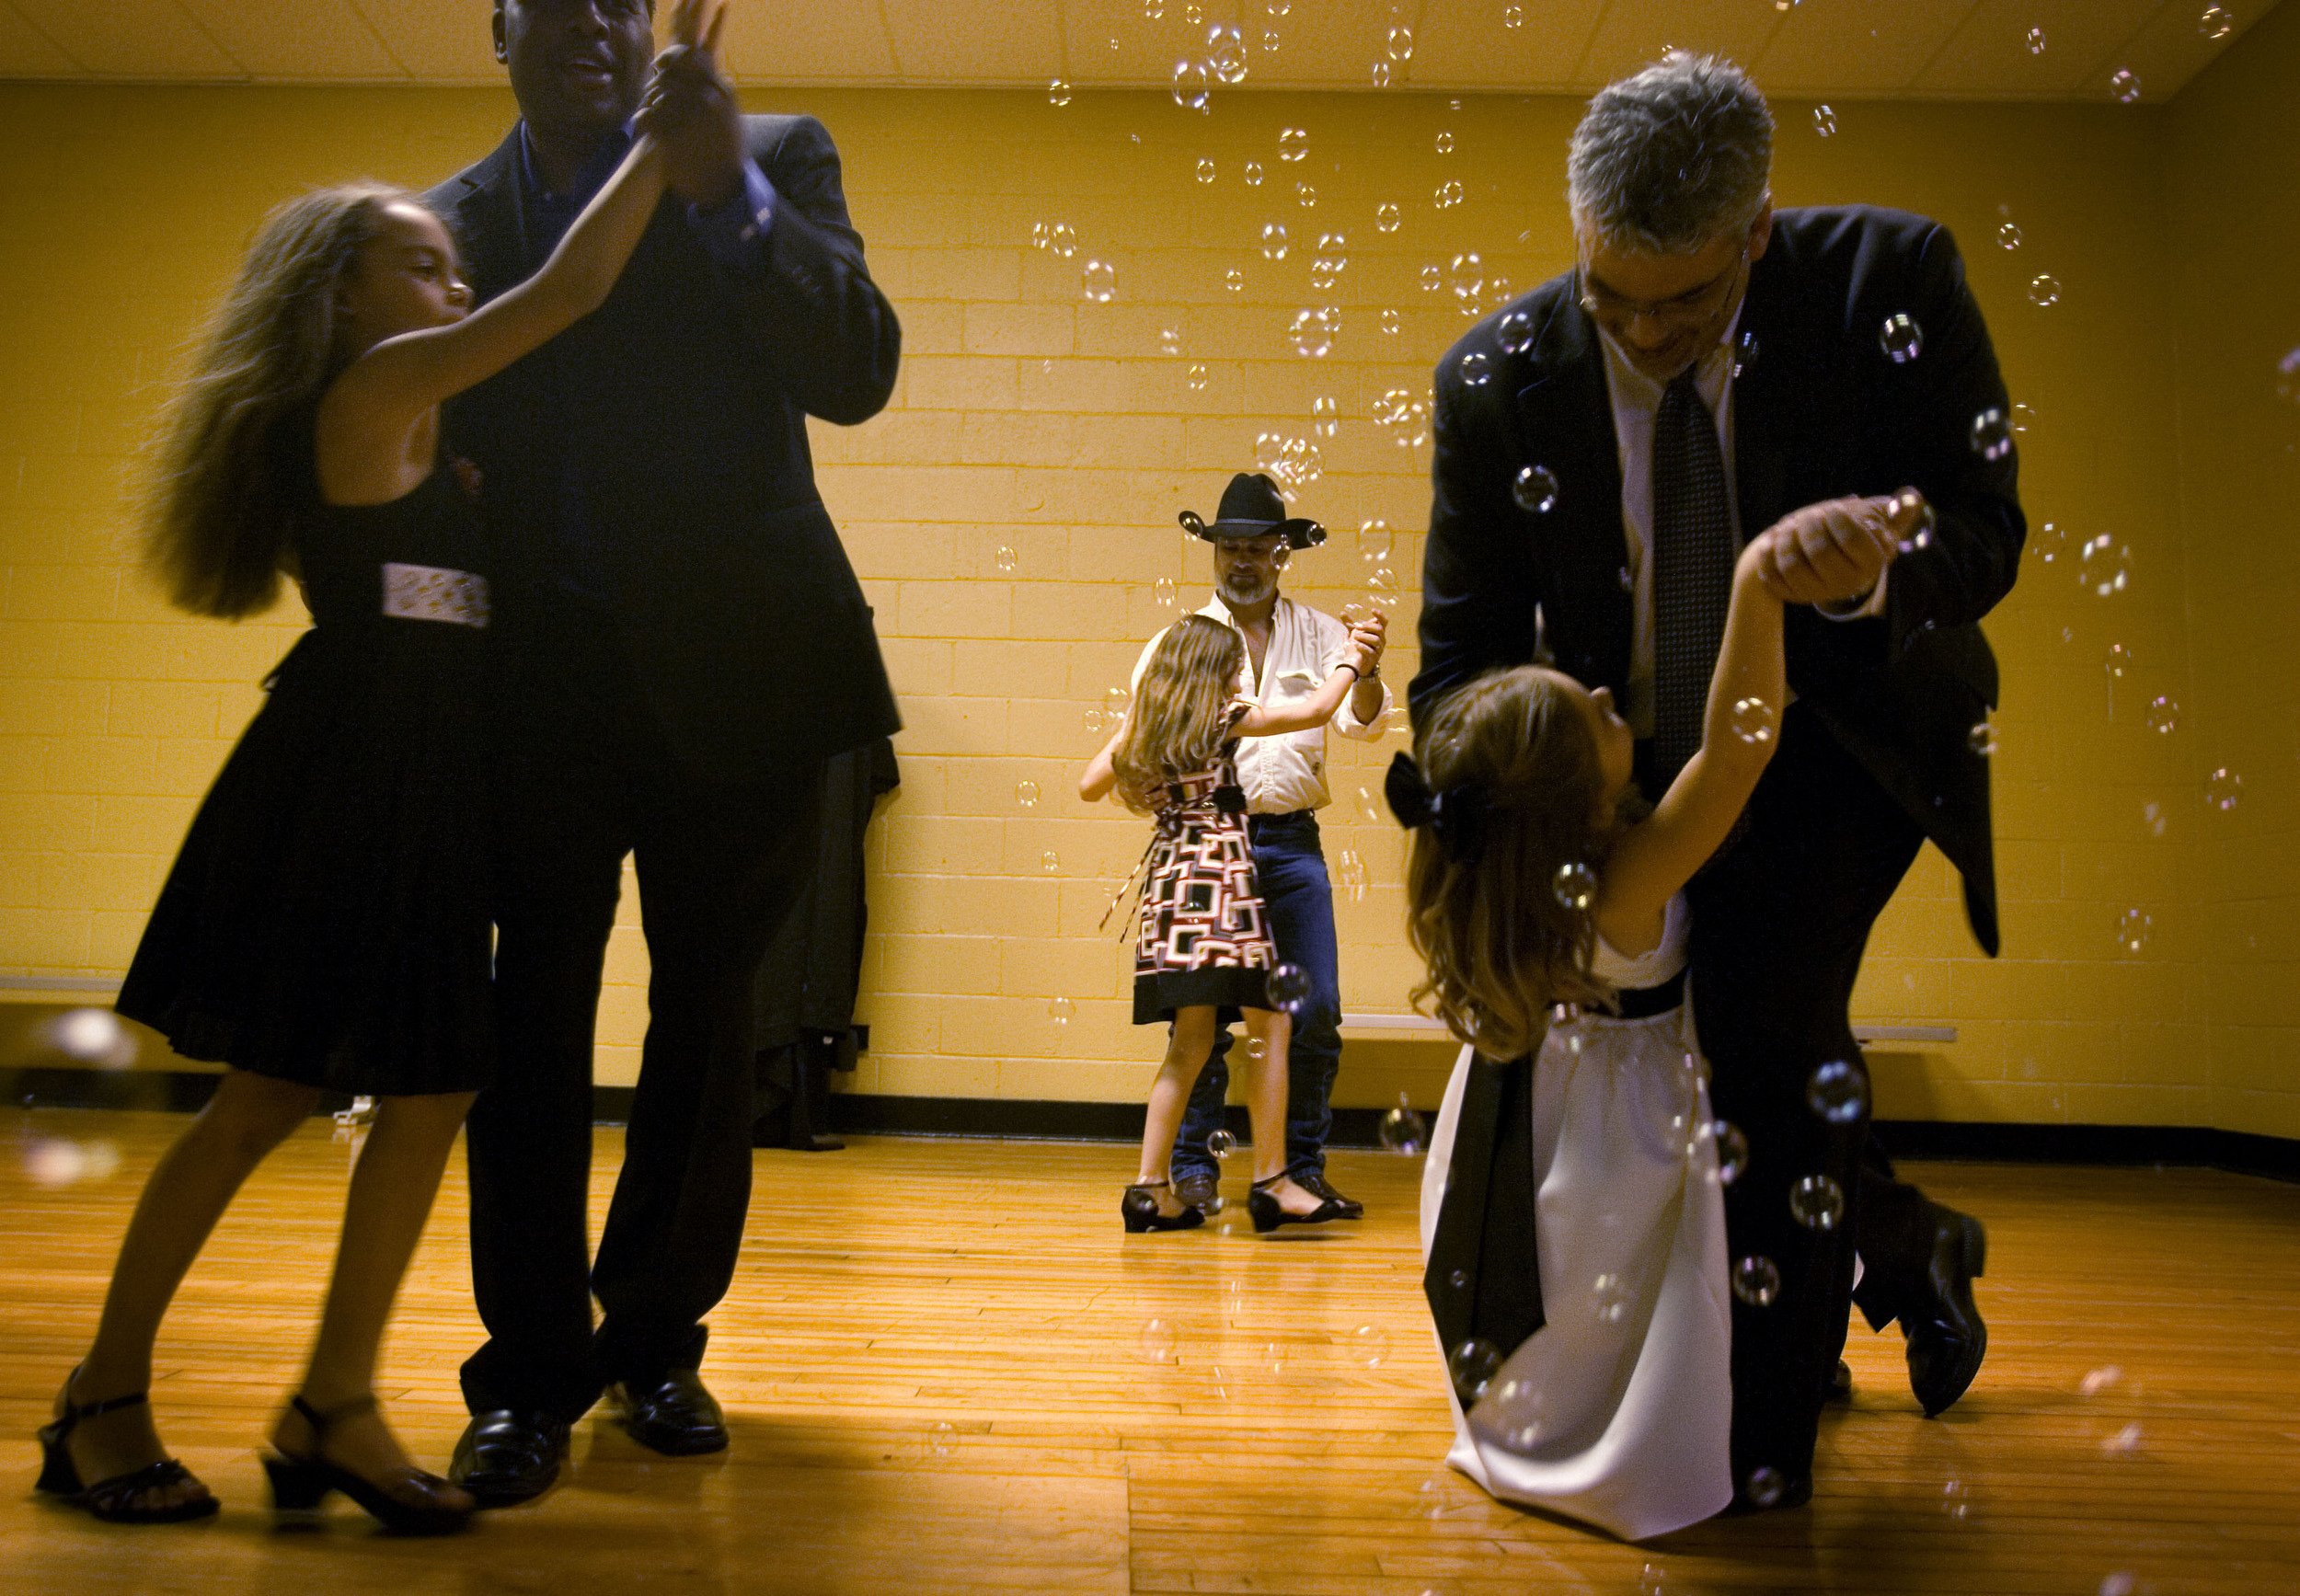 Father Roddy Ramirez, dips daughter Allison, 7, right, as they take the stage as one of the winners of the chicken dance contest during a father-daughter dance February 7, 2009 in Fairview, Tenn.